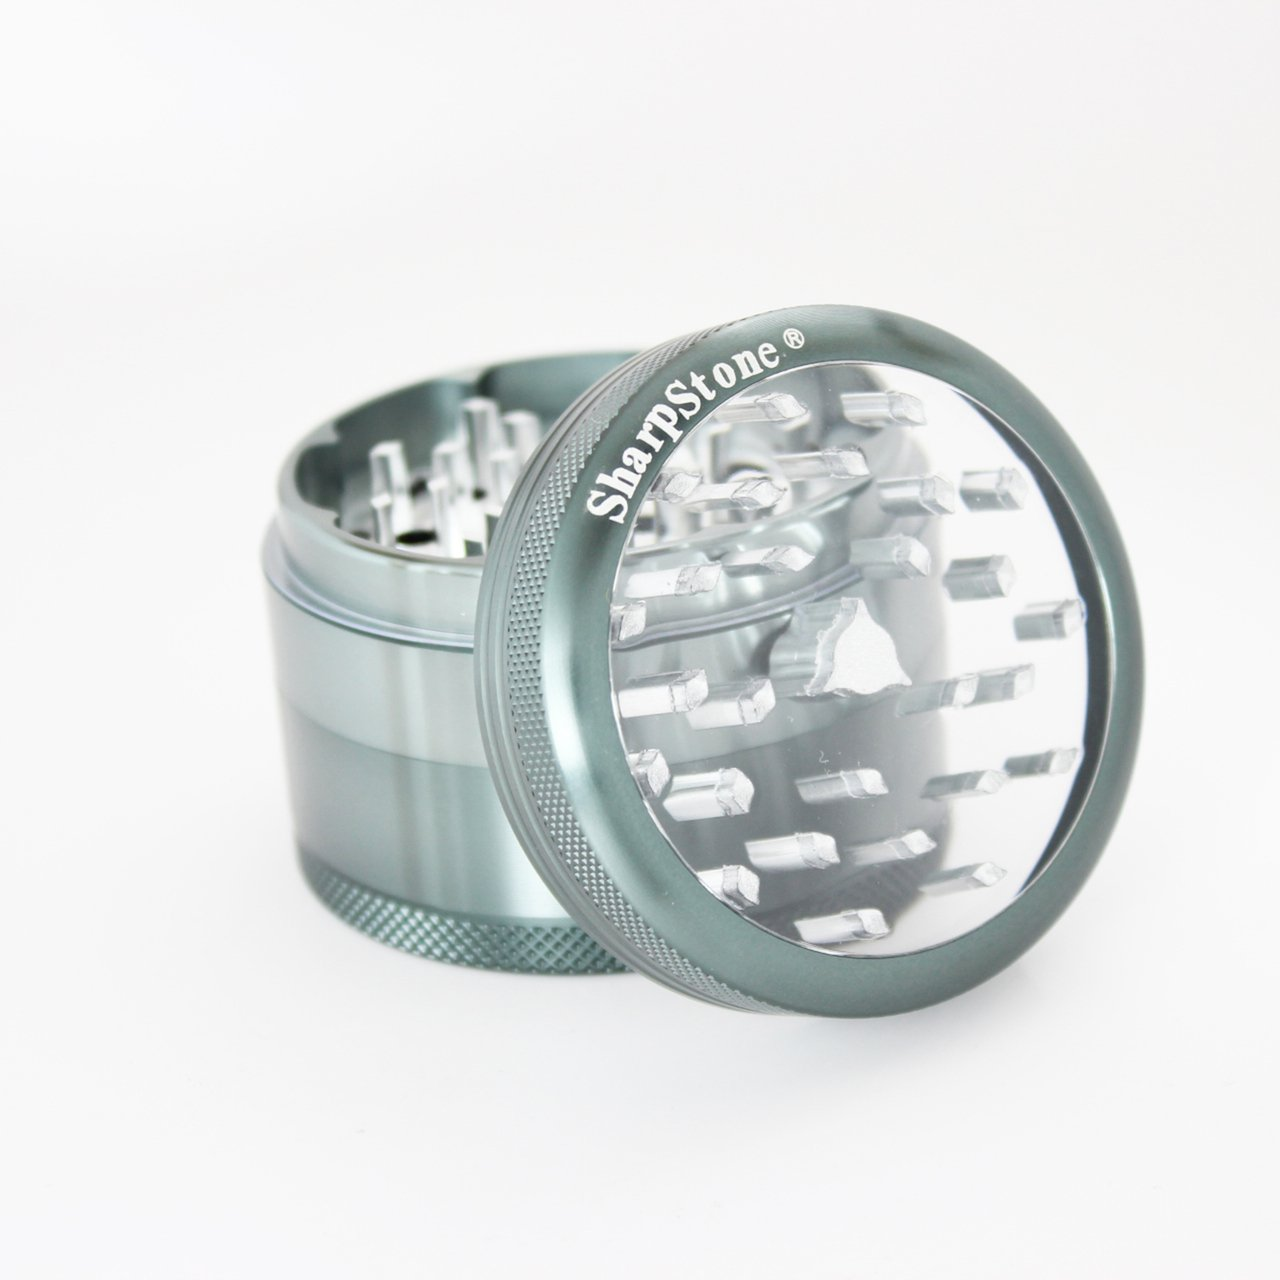 Sharp Stone Official Authentic Large 4 Piece Grinder Clear Top 2.5 Inches Grey + Free Performance Technology Wrist Band